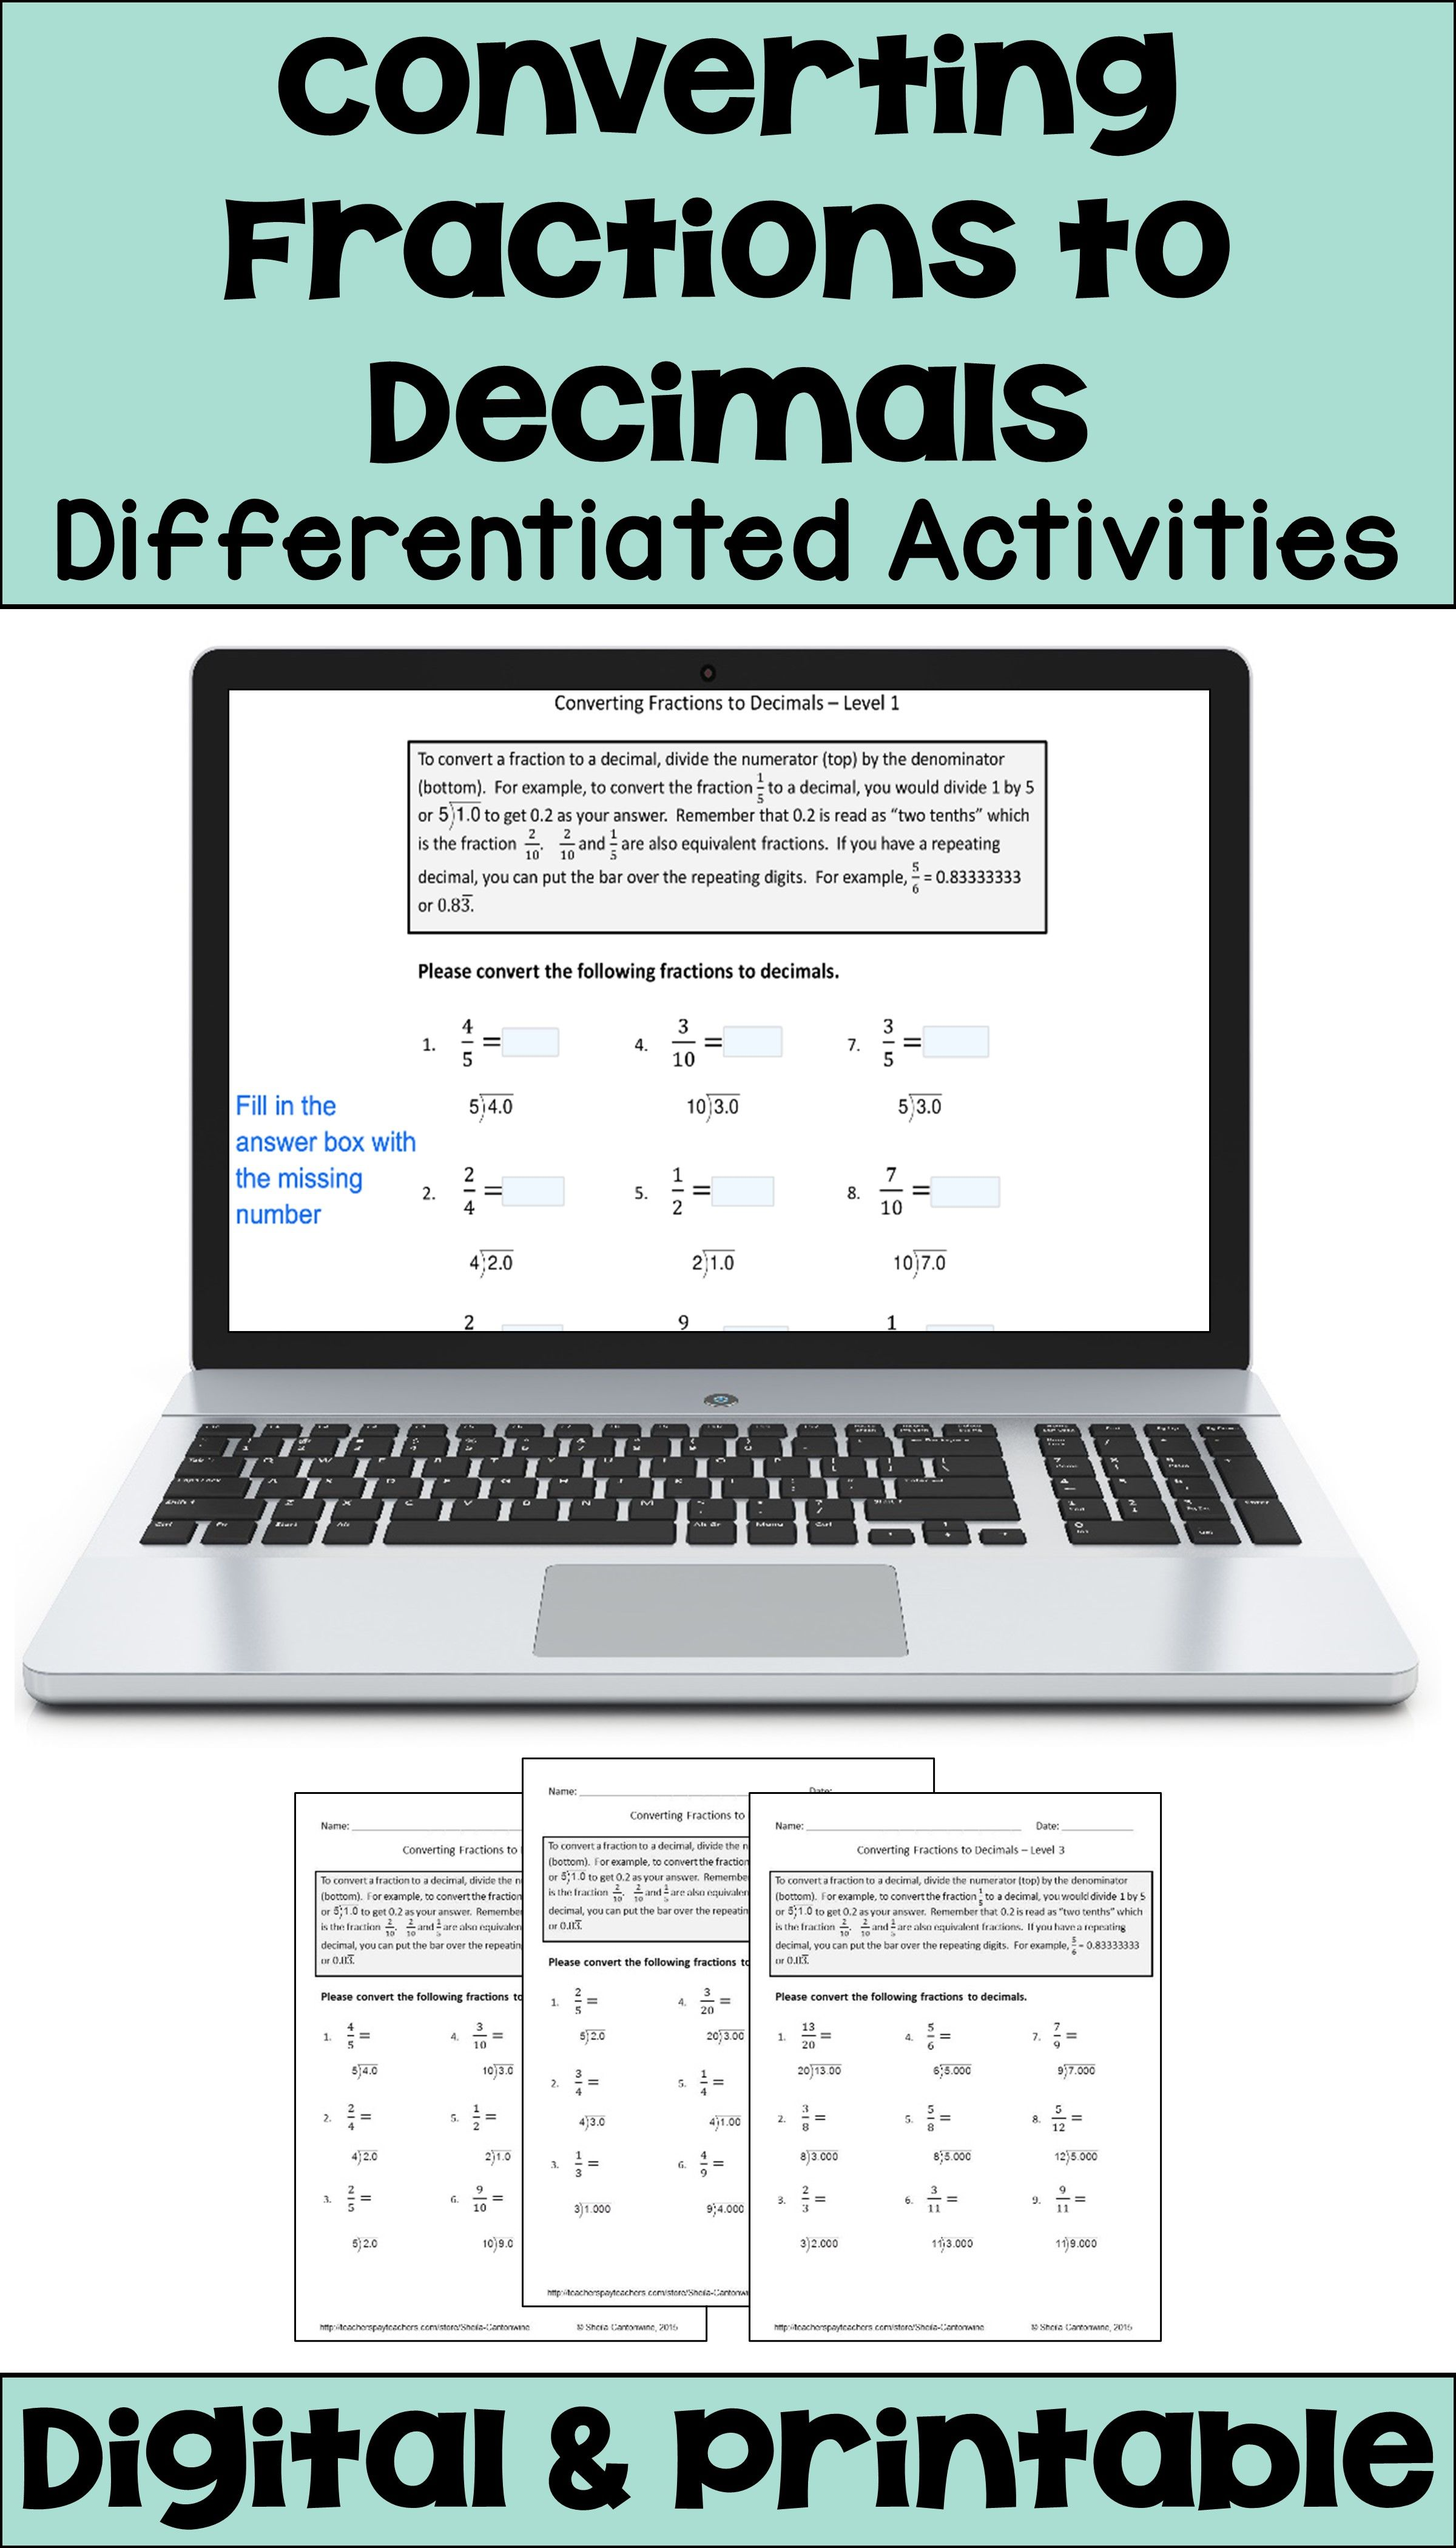 Converting Fractions To Decimals Worksheets With Printable